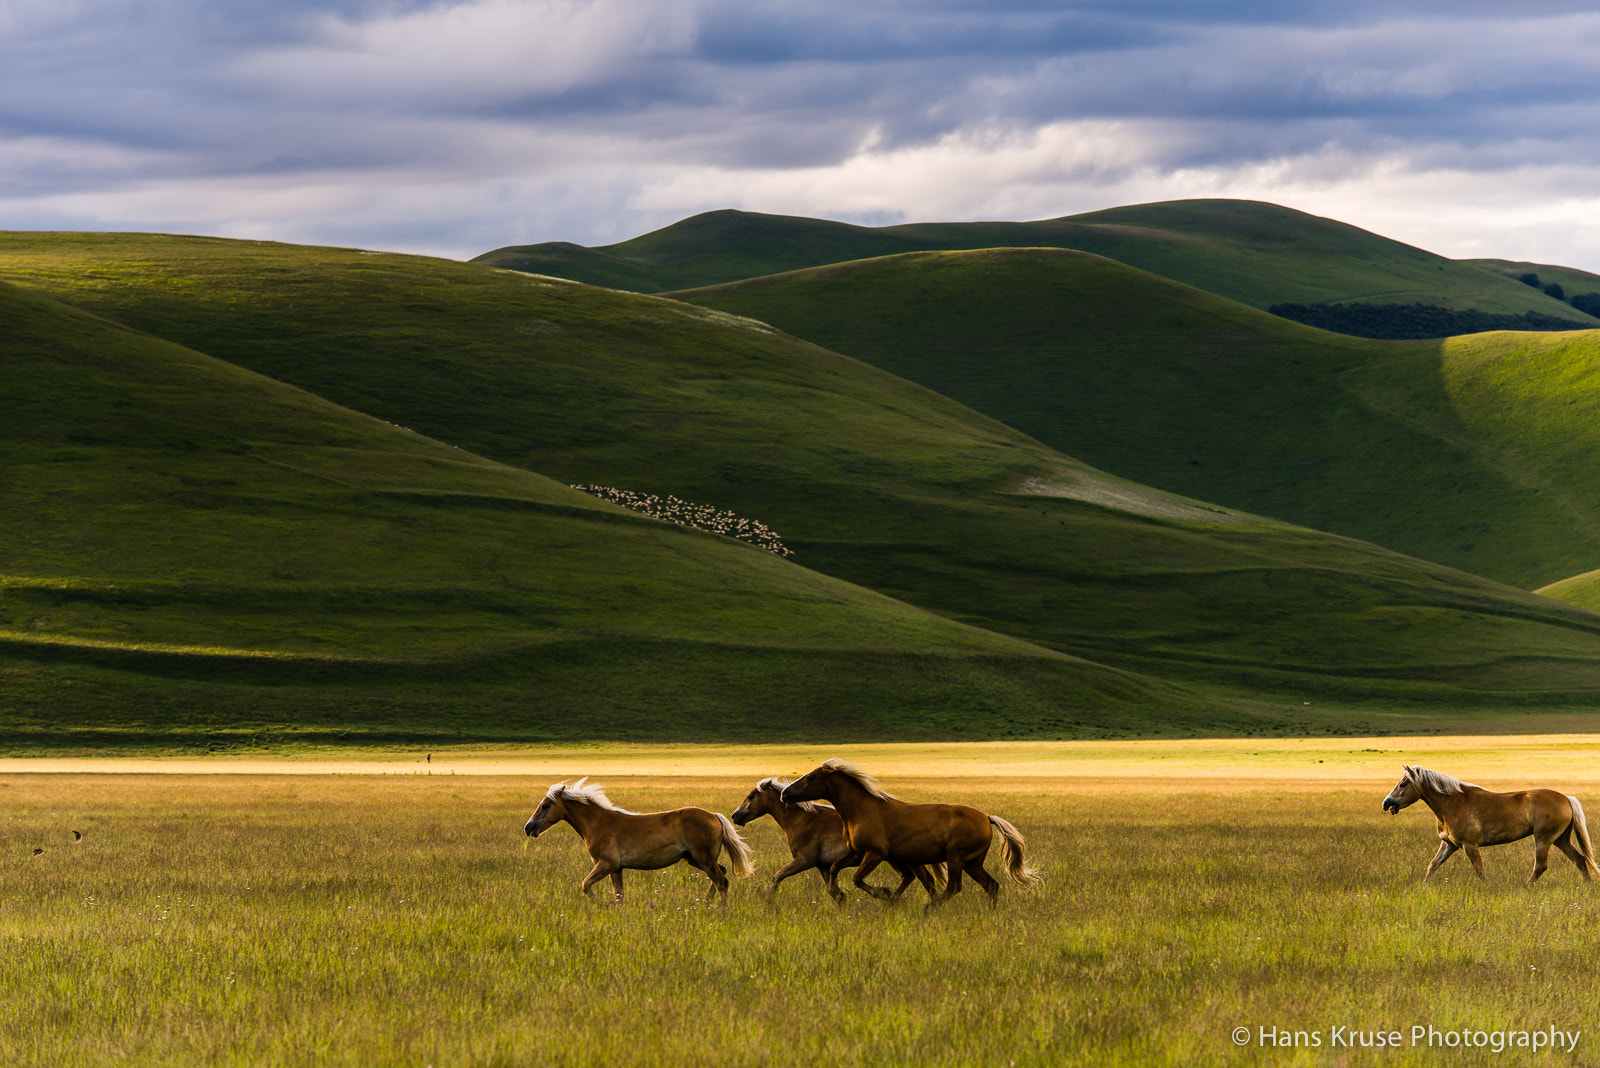 Photograph Horses on Piano Grande at Castelluccio by Hans Kruse on 500px